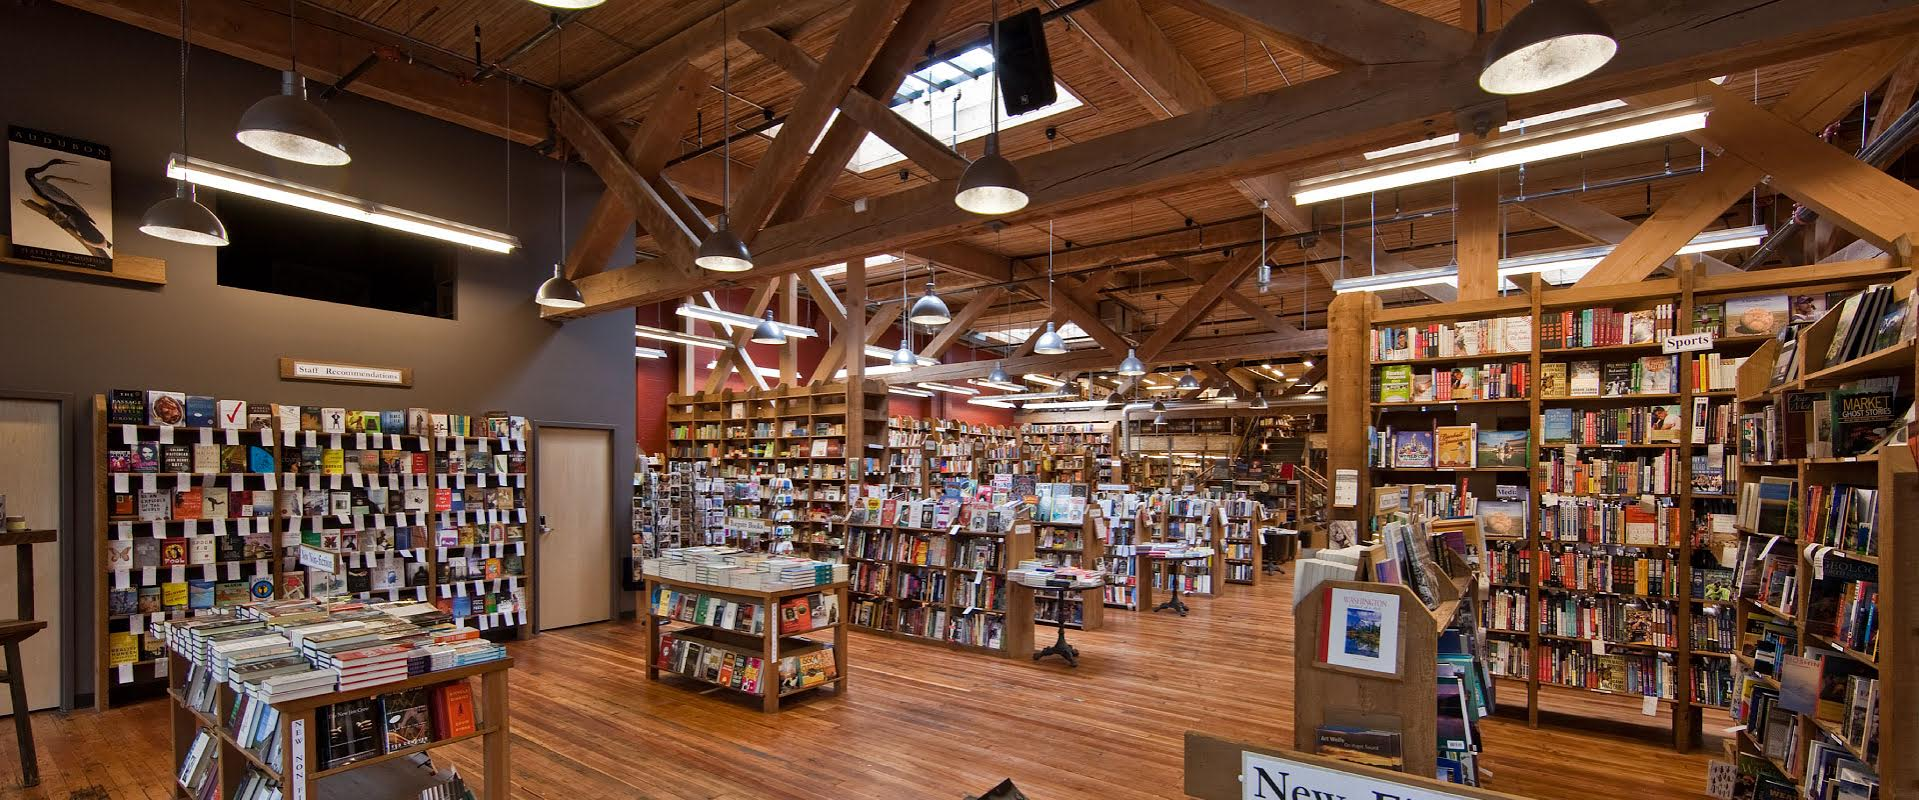 welcome to the elliott bay book company the elliott bay book company